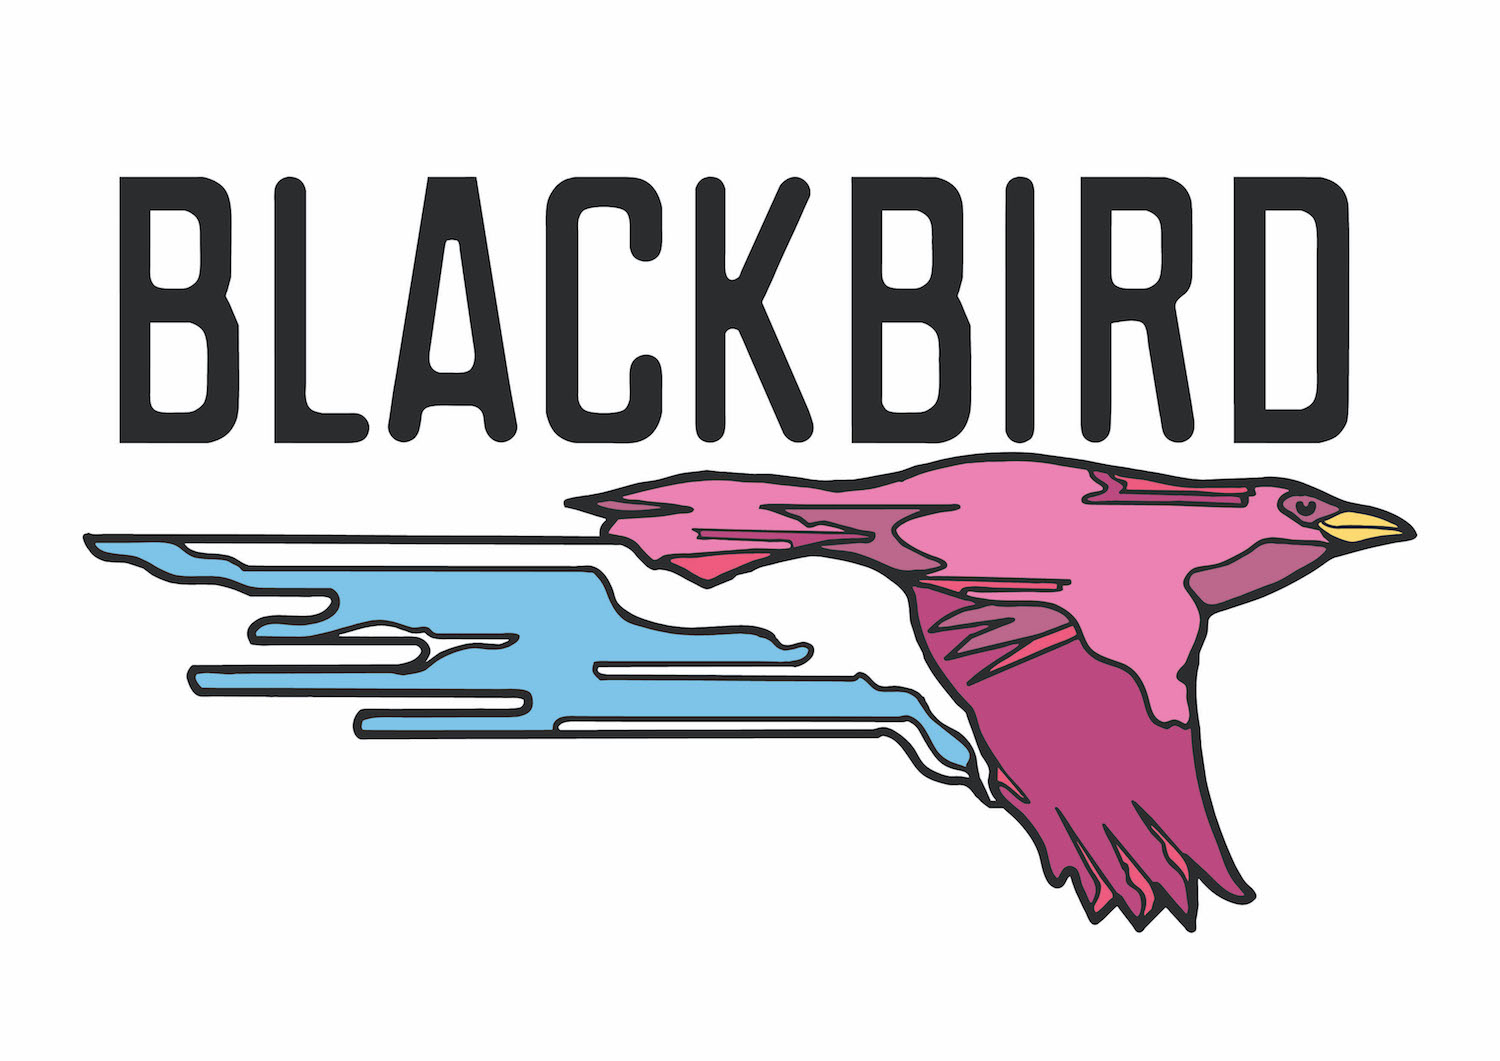 Blackbird ventures VC Partner logo